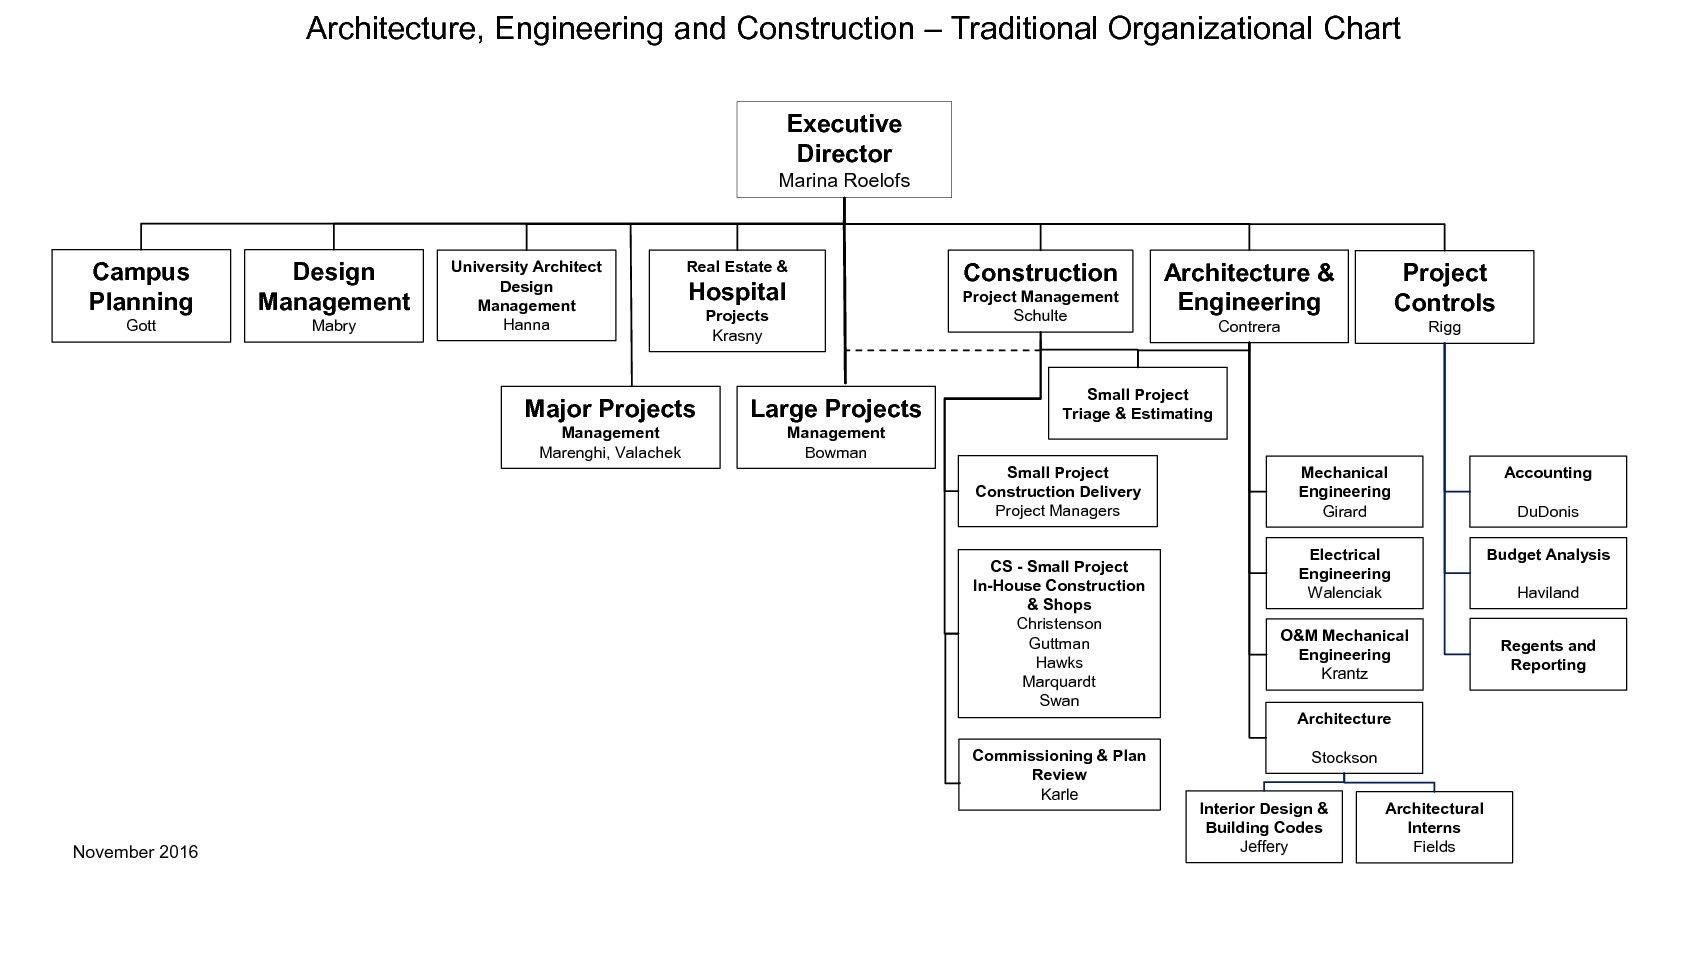 organization chart architecture engineering and construction